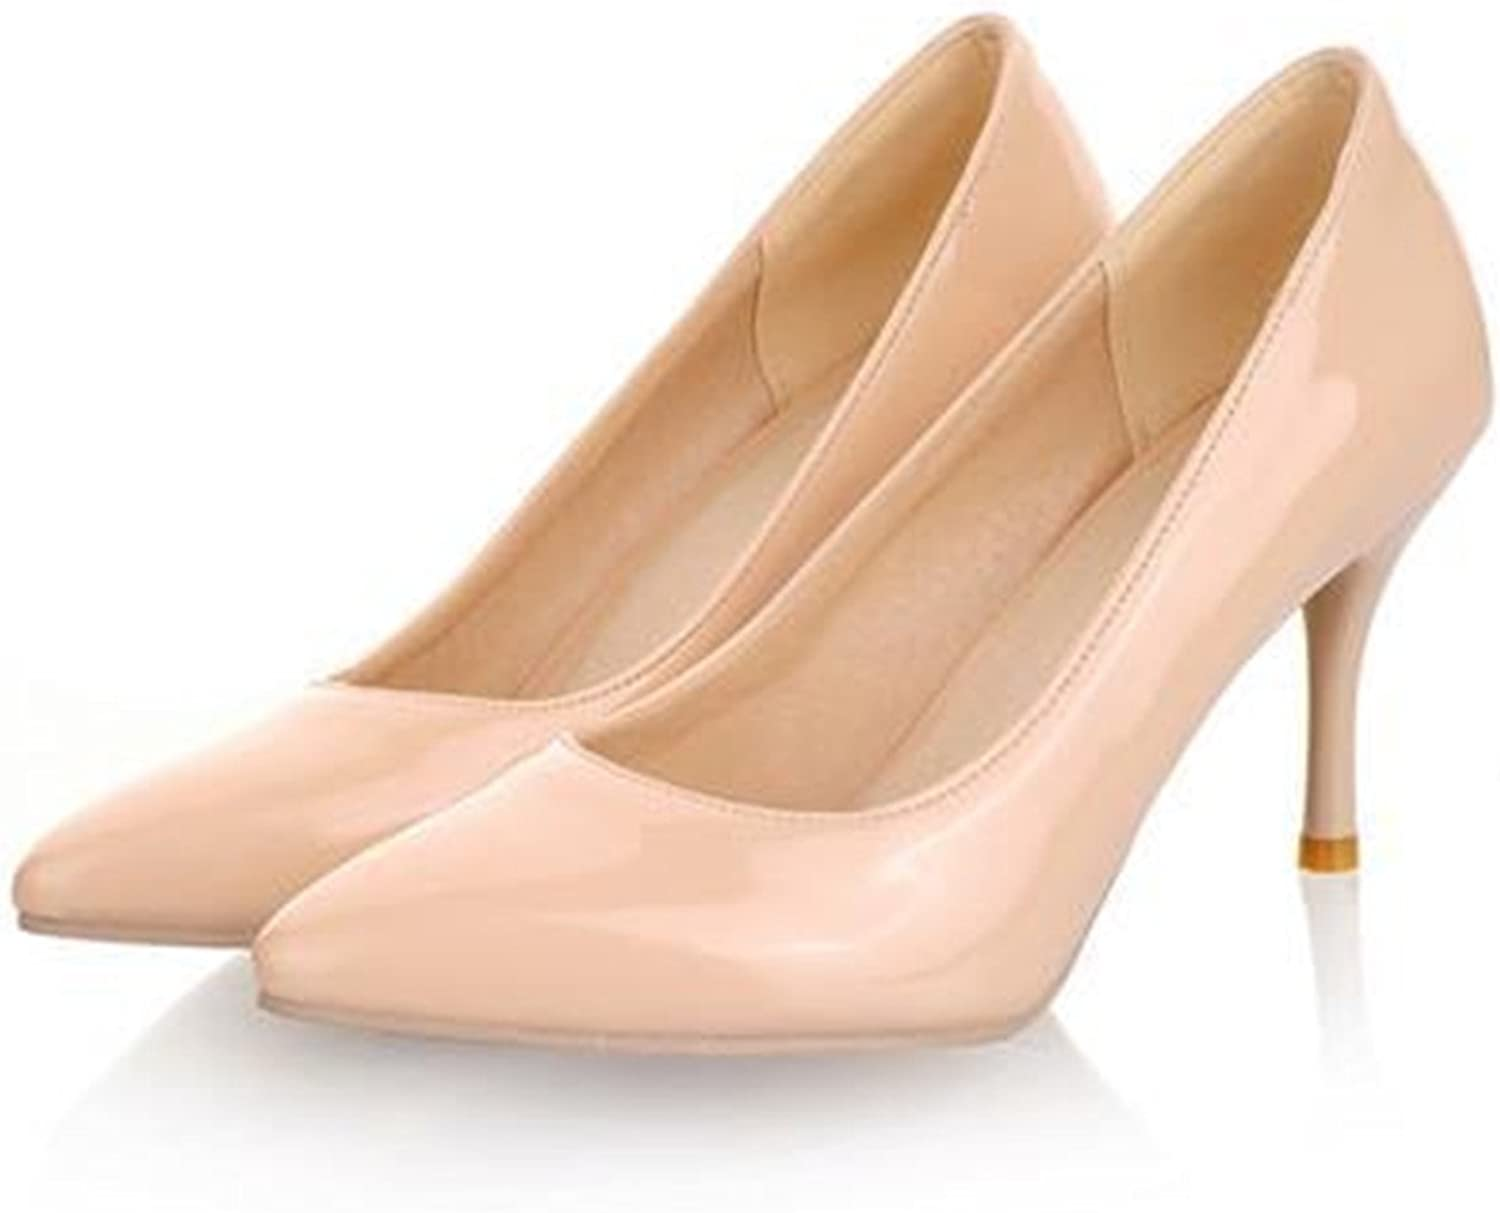 Gome-z Size 34-45 2018 High Heels Women Pumps Thin Heel Classic White Red Nede Beige Sexy Prom Wedding shoes